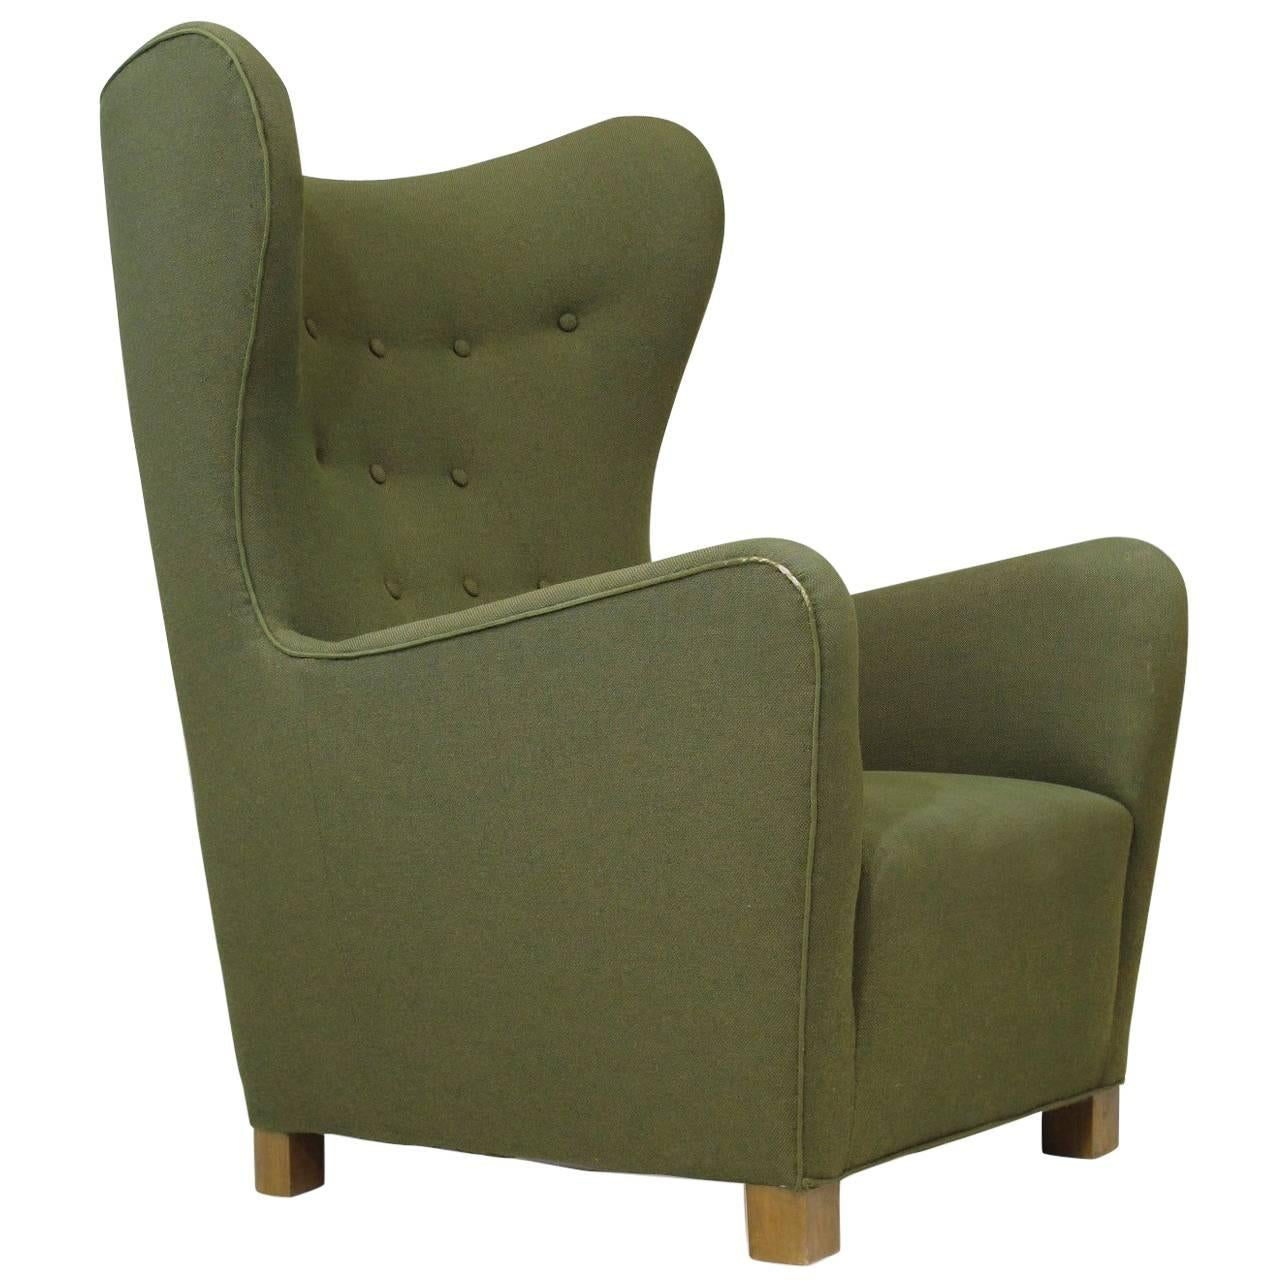 fritz hansen model wing back chair in the original green wool fabric